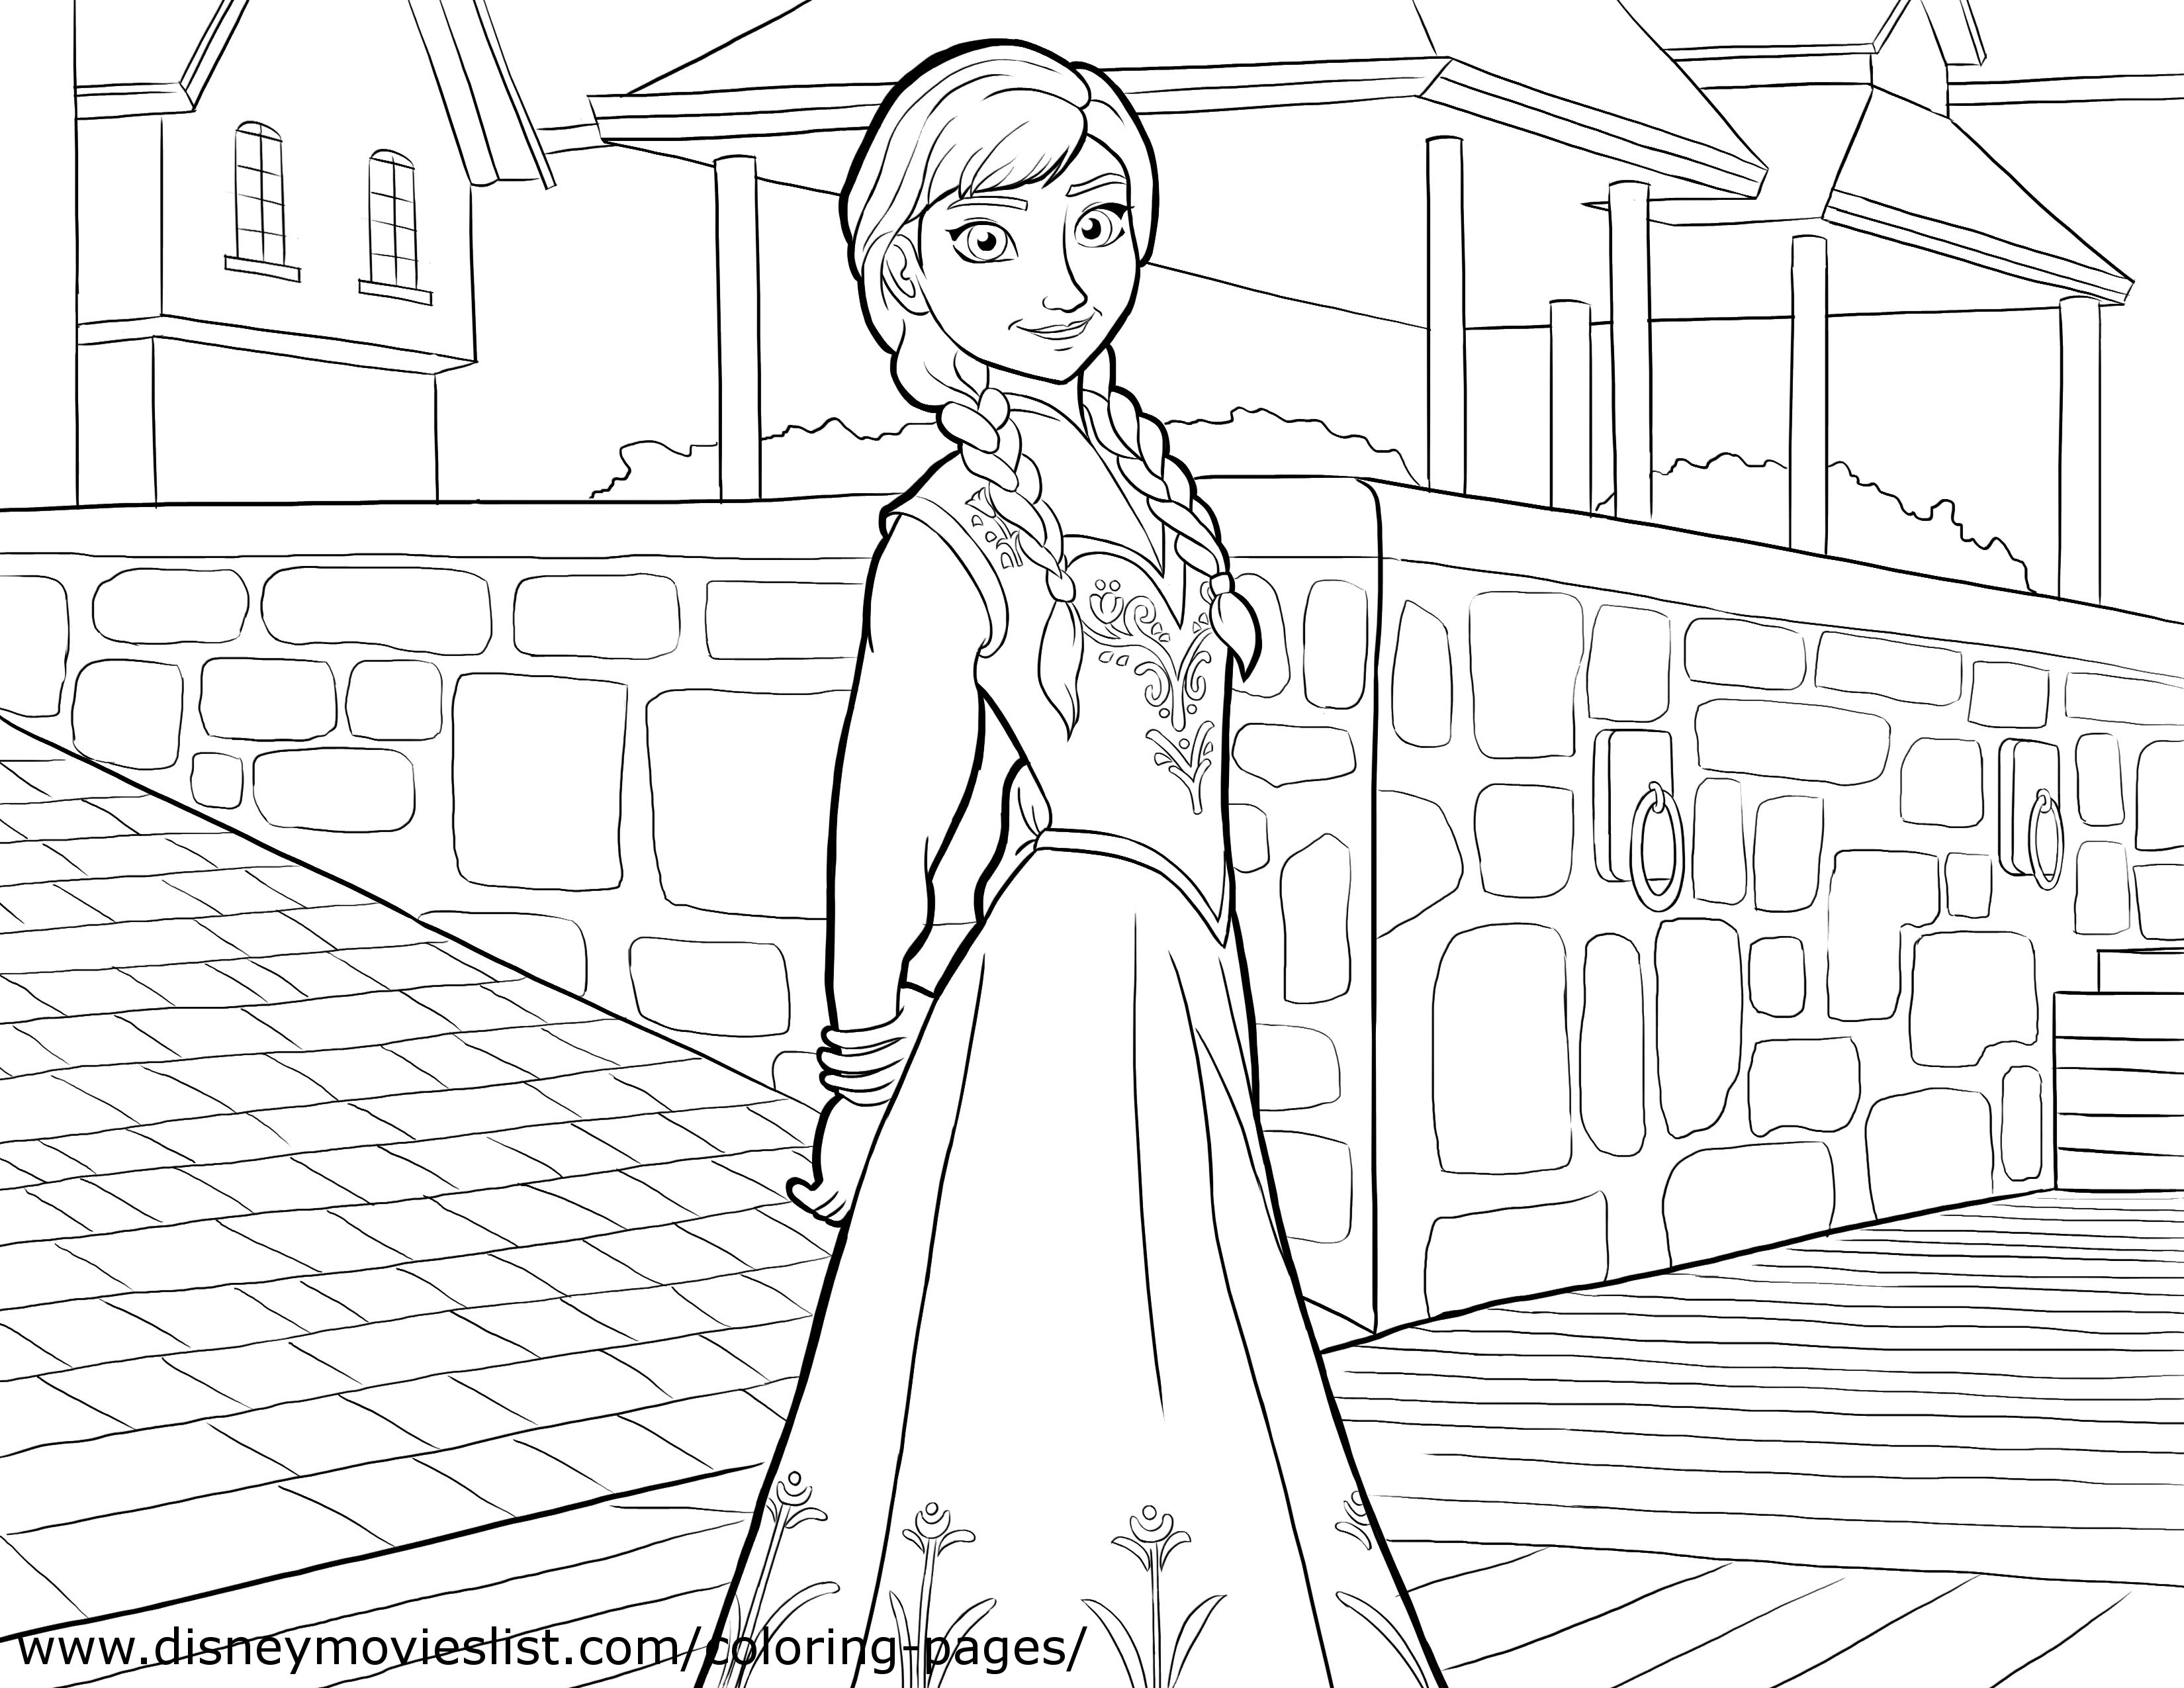 A new coat for anna coloring pages ~ Anna Coloring Page - Princess Anna Photo (36145786) - Fanpop